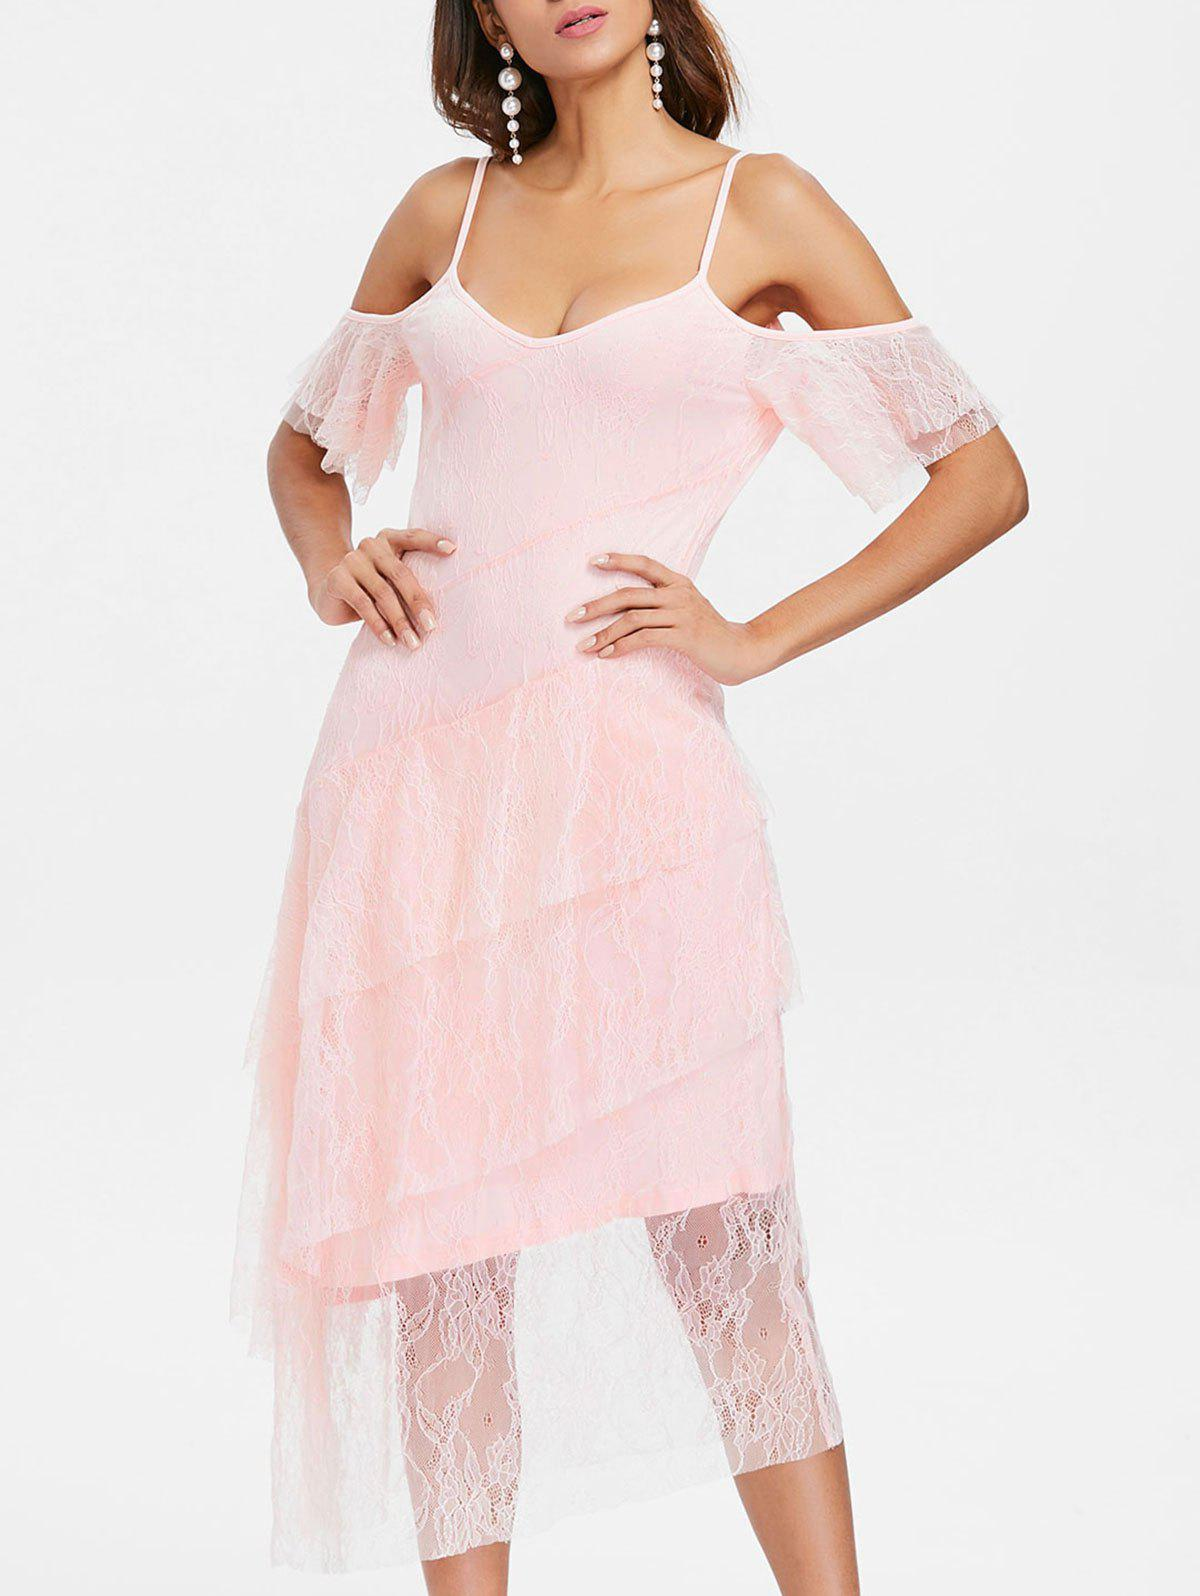 Flounce Sleeve Layered Cocktail Dress - LIGHT PINK M